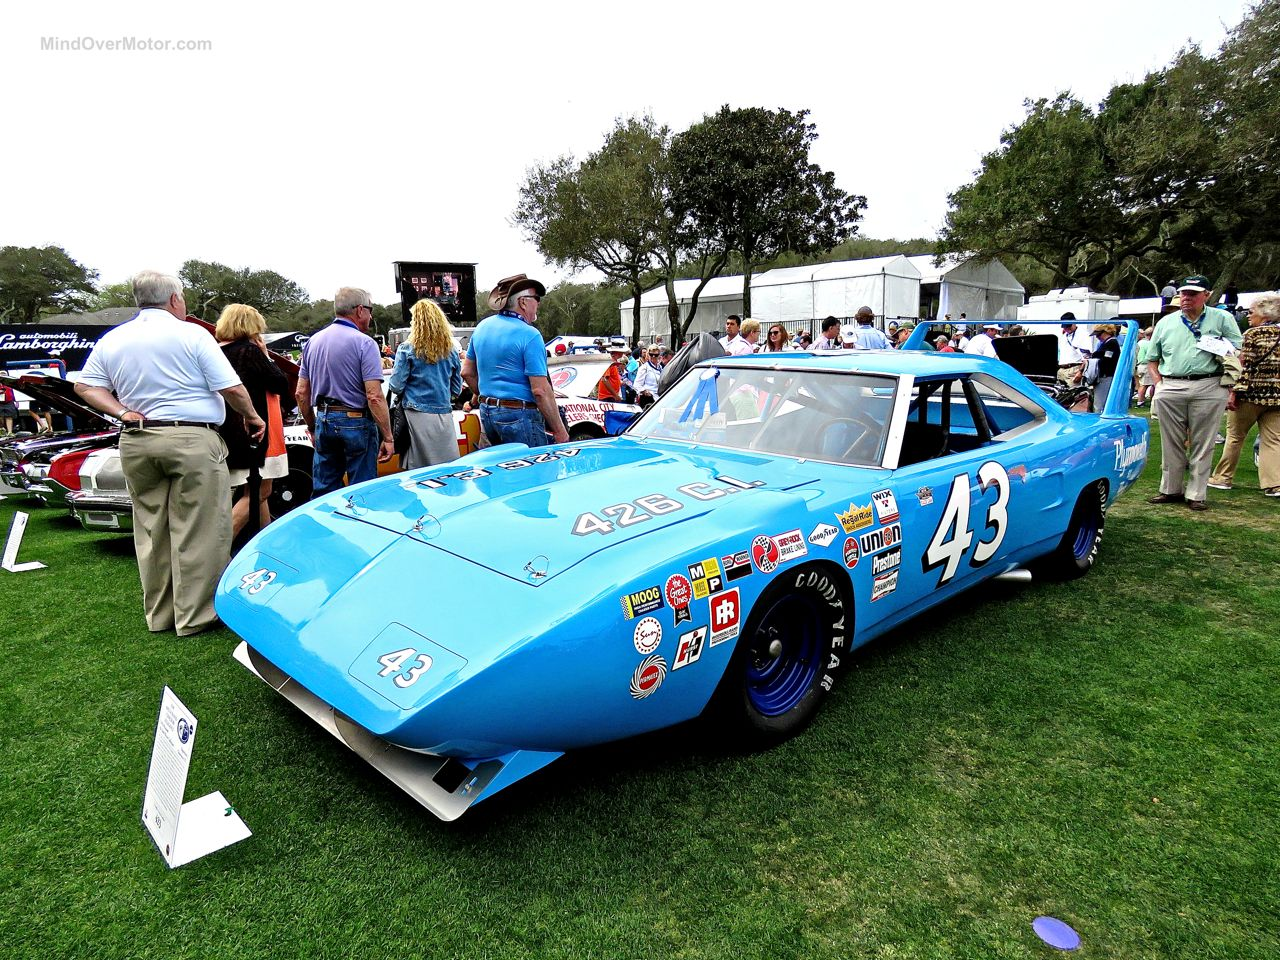 Amelia Island Concours Plymouth Superbird Richard Petty 43